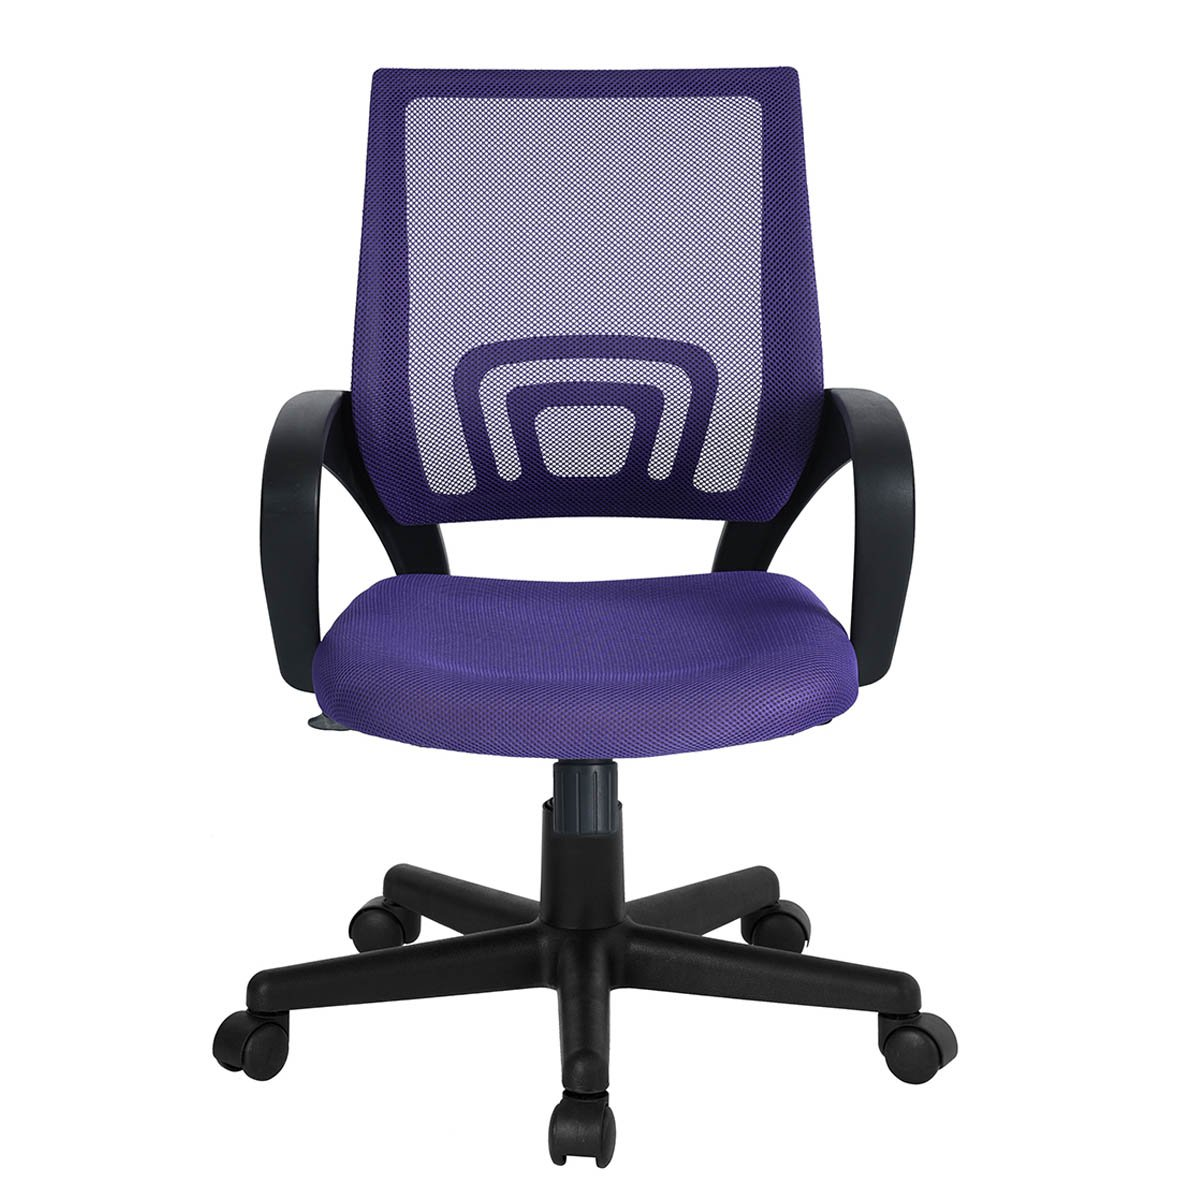 Ergonomic High-back Mesh Swivel Computer Office Chair (Purple)